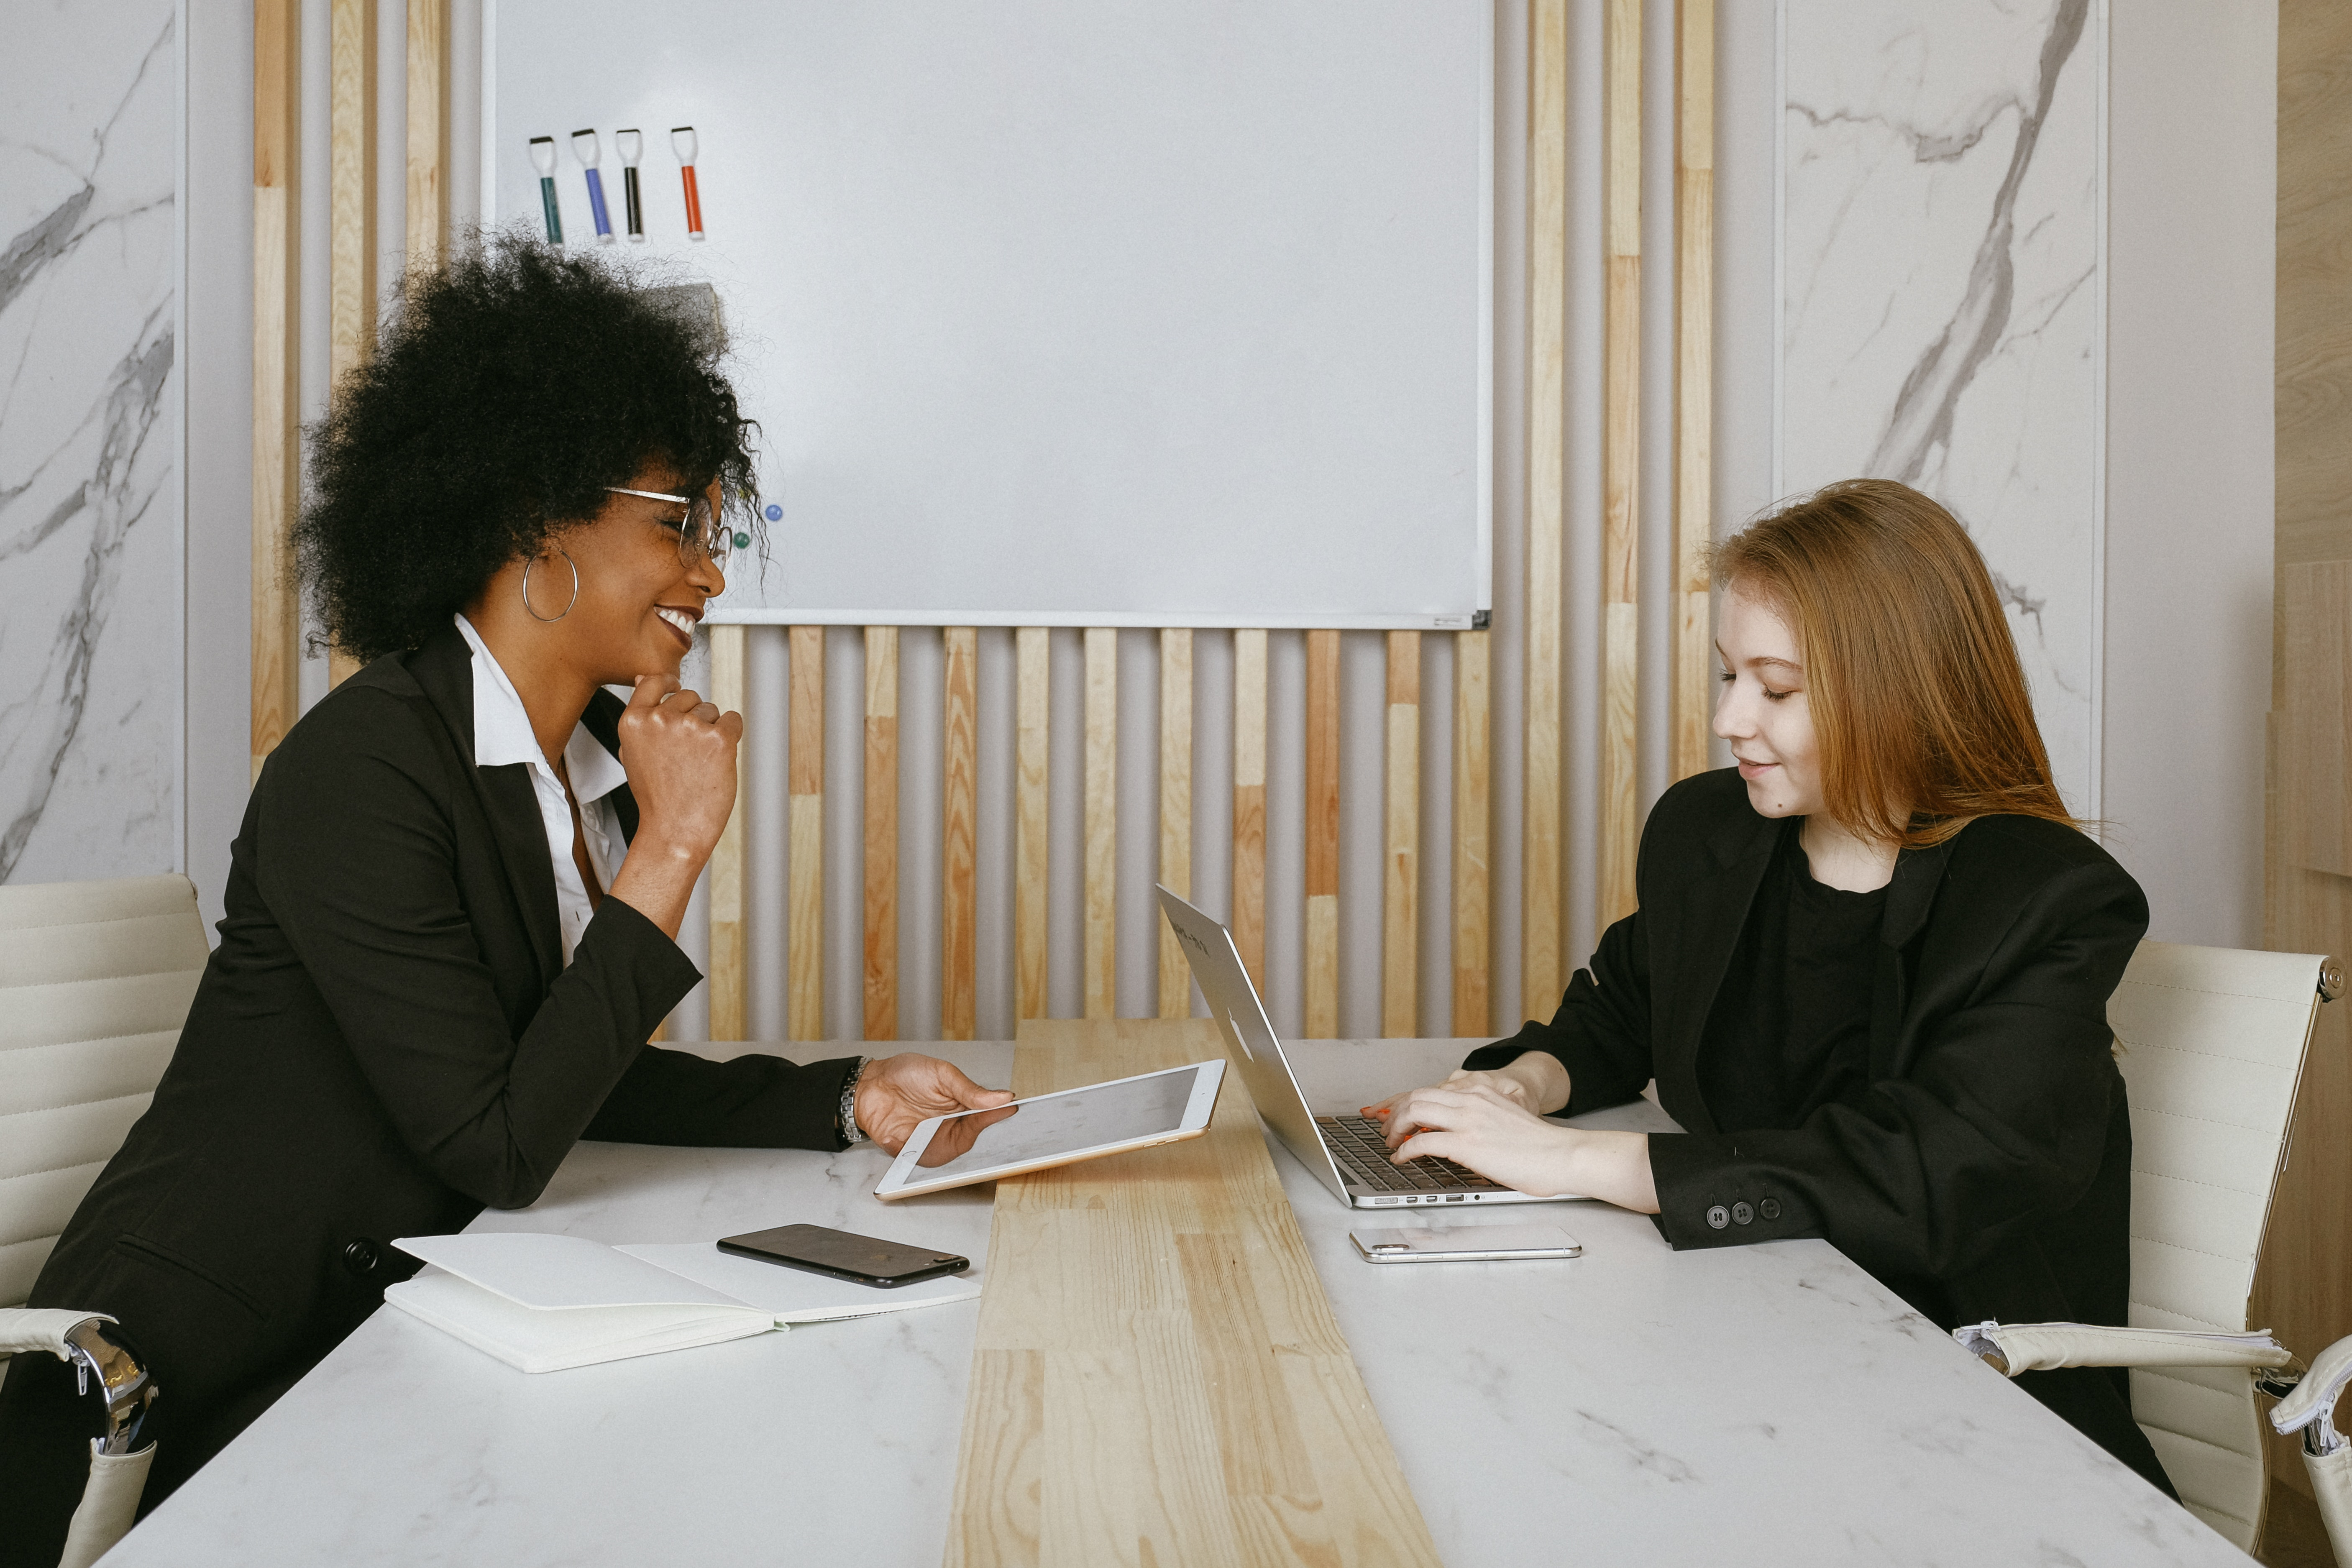 Two businesspeople meeting